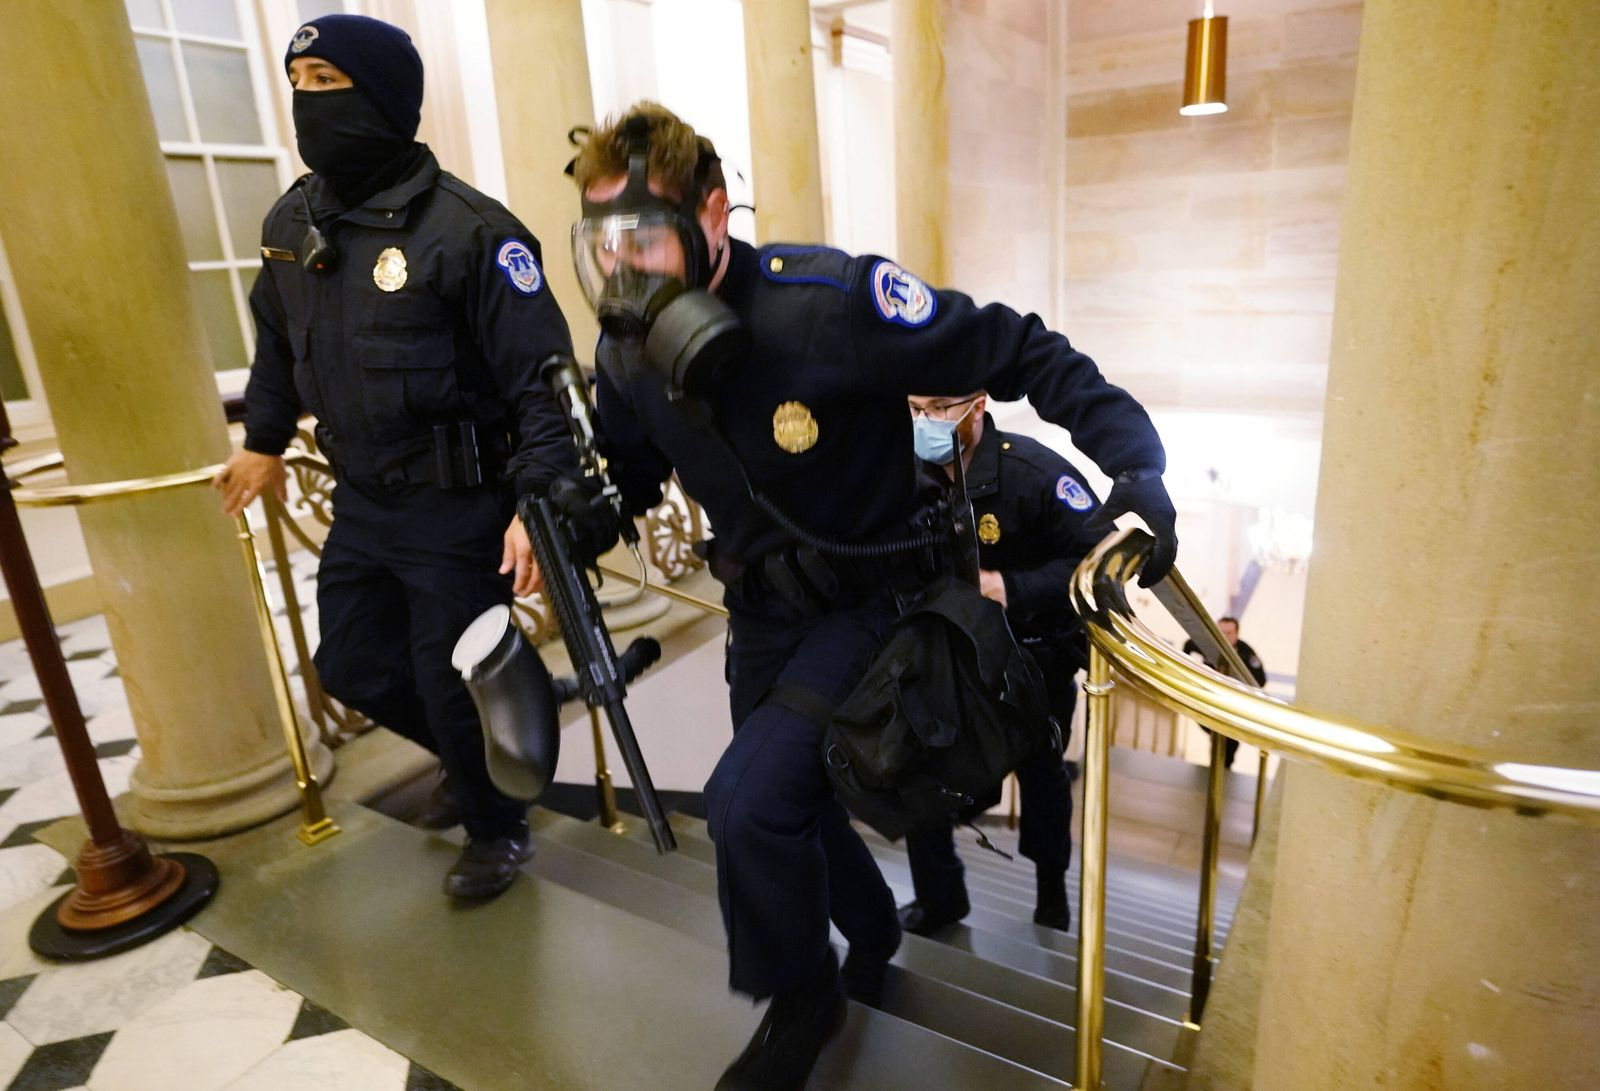 U.S. Capitol police officers take positions as protestors enter the Capitol building during a joint session of Congress